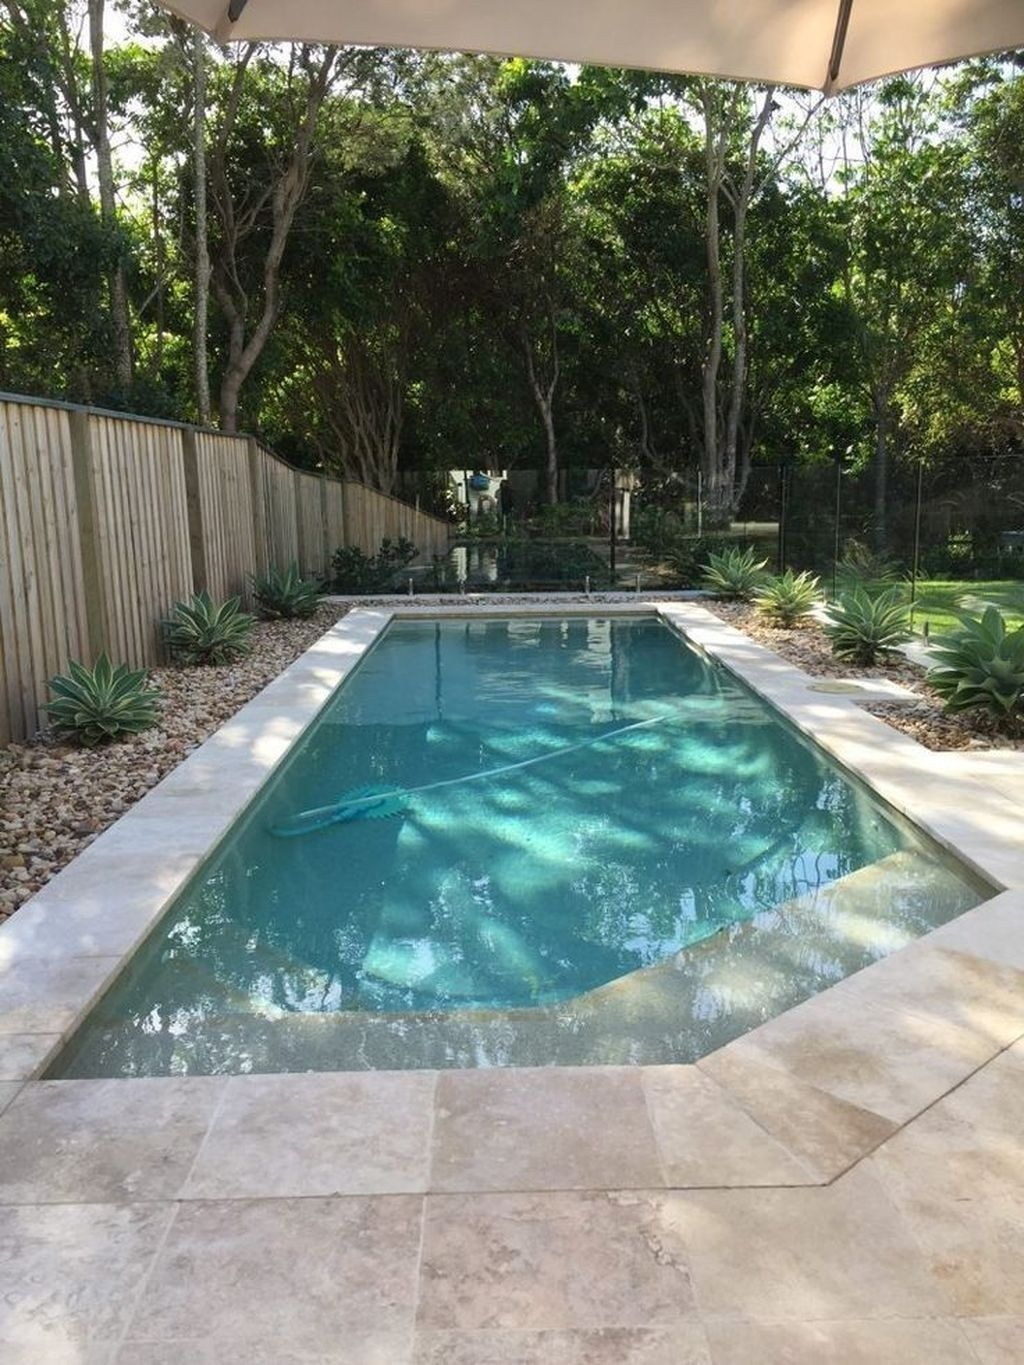 Pool Decks Are The Hardscape Areas That Surround The Pools They Prevent The Bare Feet From Stepping Small Pool Design Backyard Pool Designs Indoor Pool Design